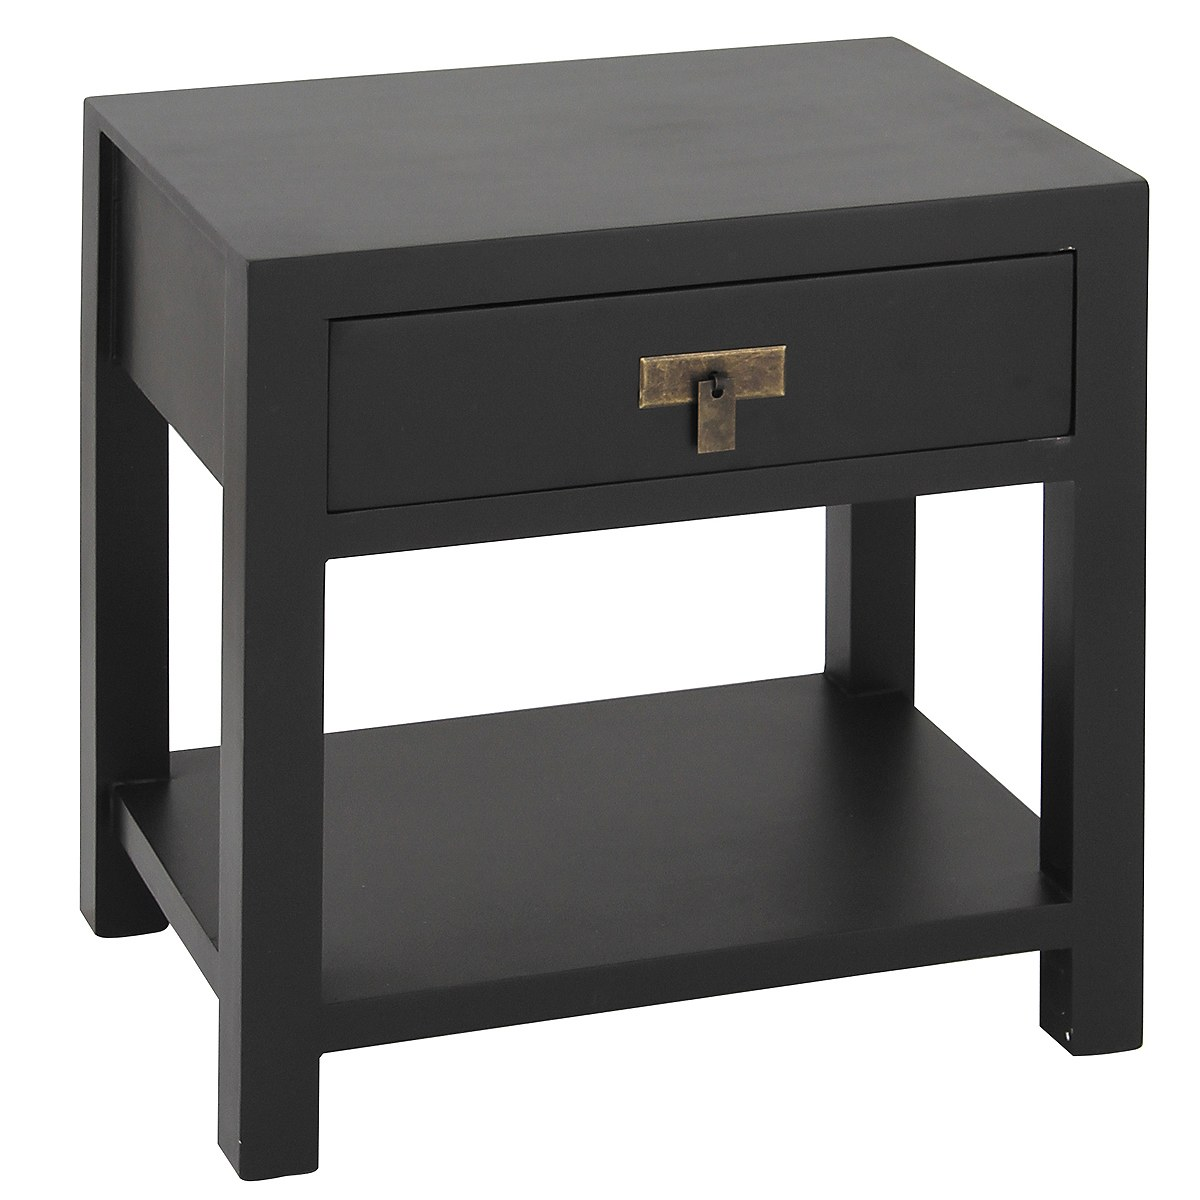 French bedside tables bedsides french bedroom company for Bedside table shelf